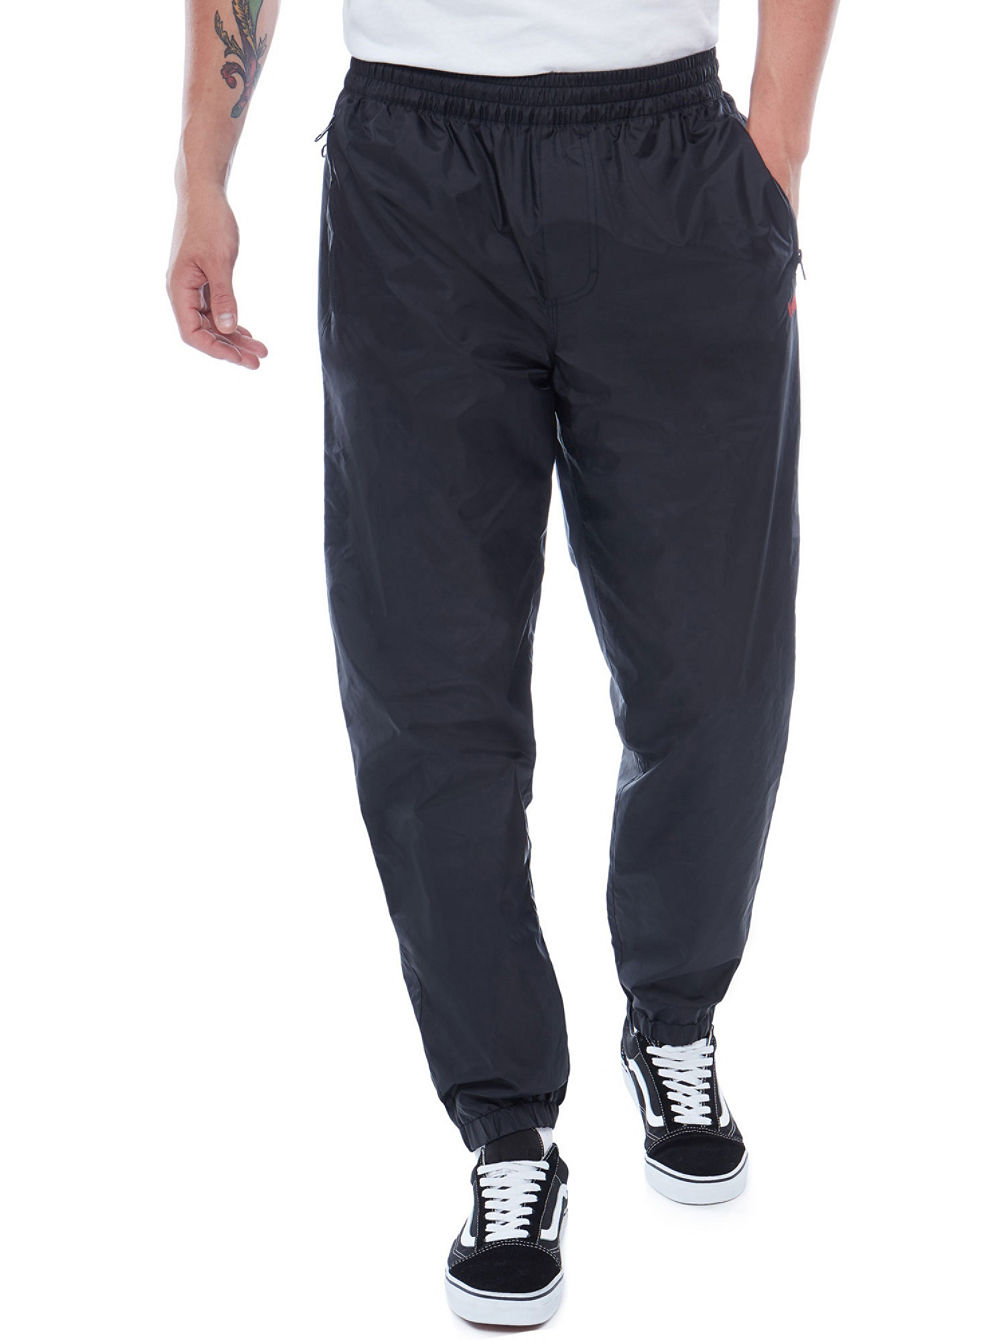 Sketch Tape Jogging Pants